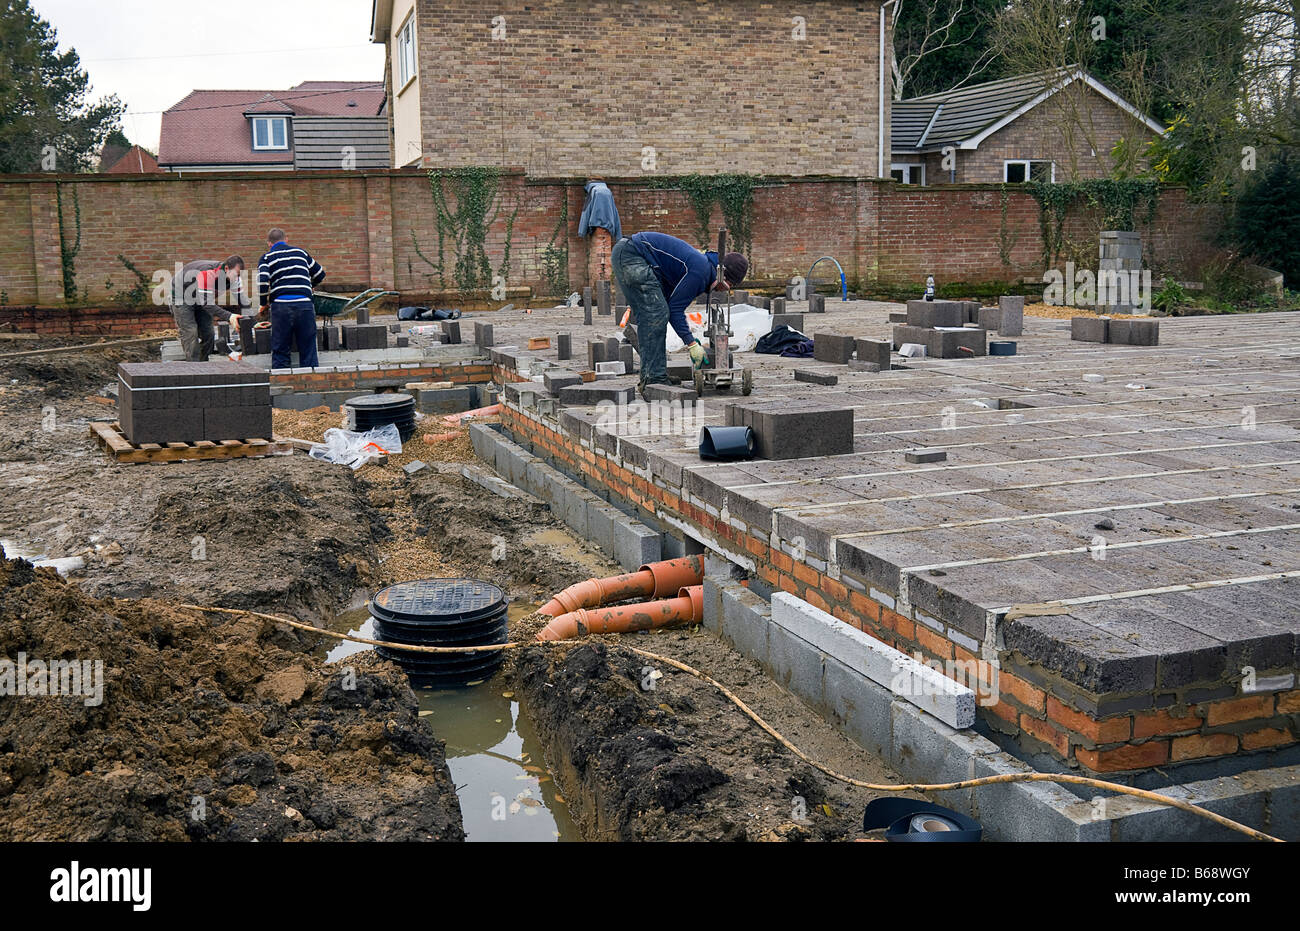 Workmen Laying Concrete Blocks To Build The First Stage Of A House Floor.